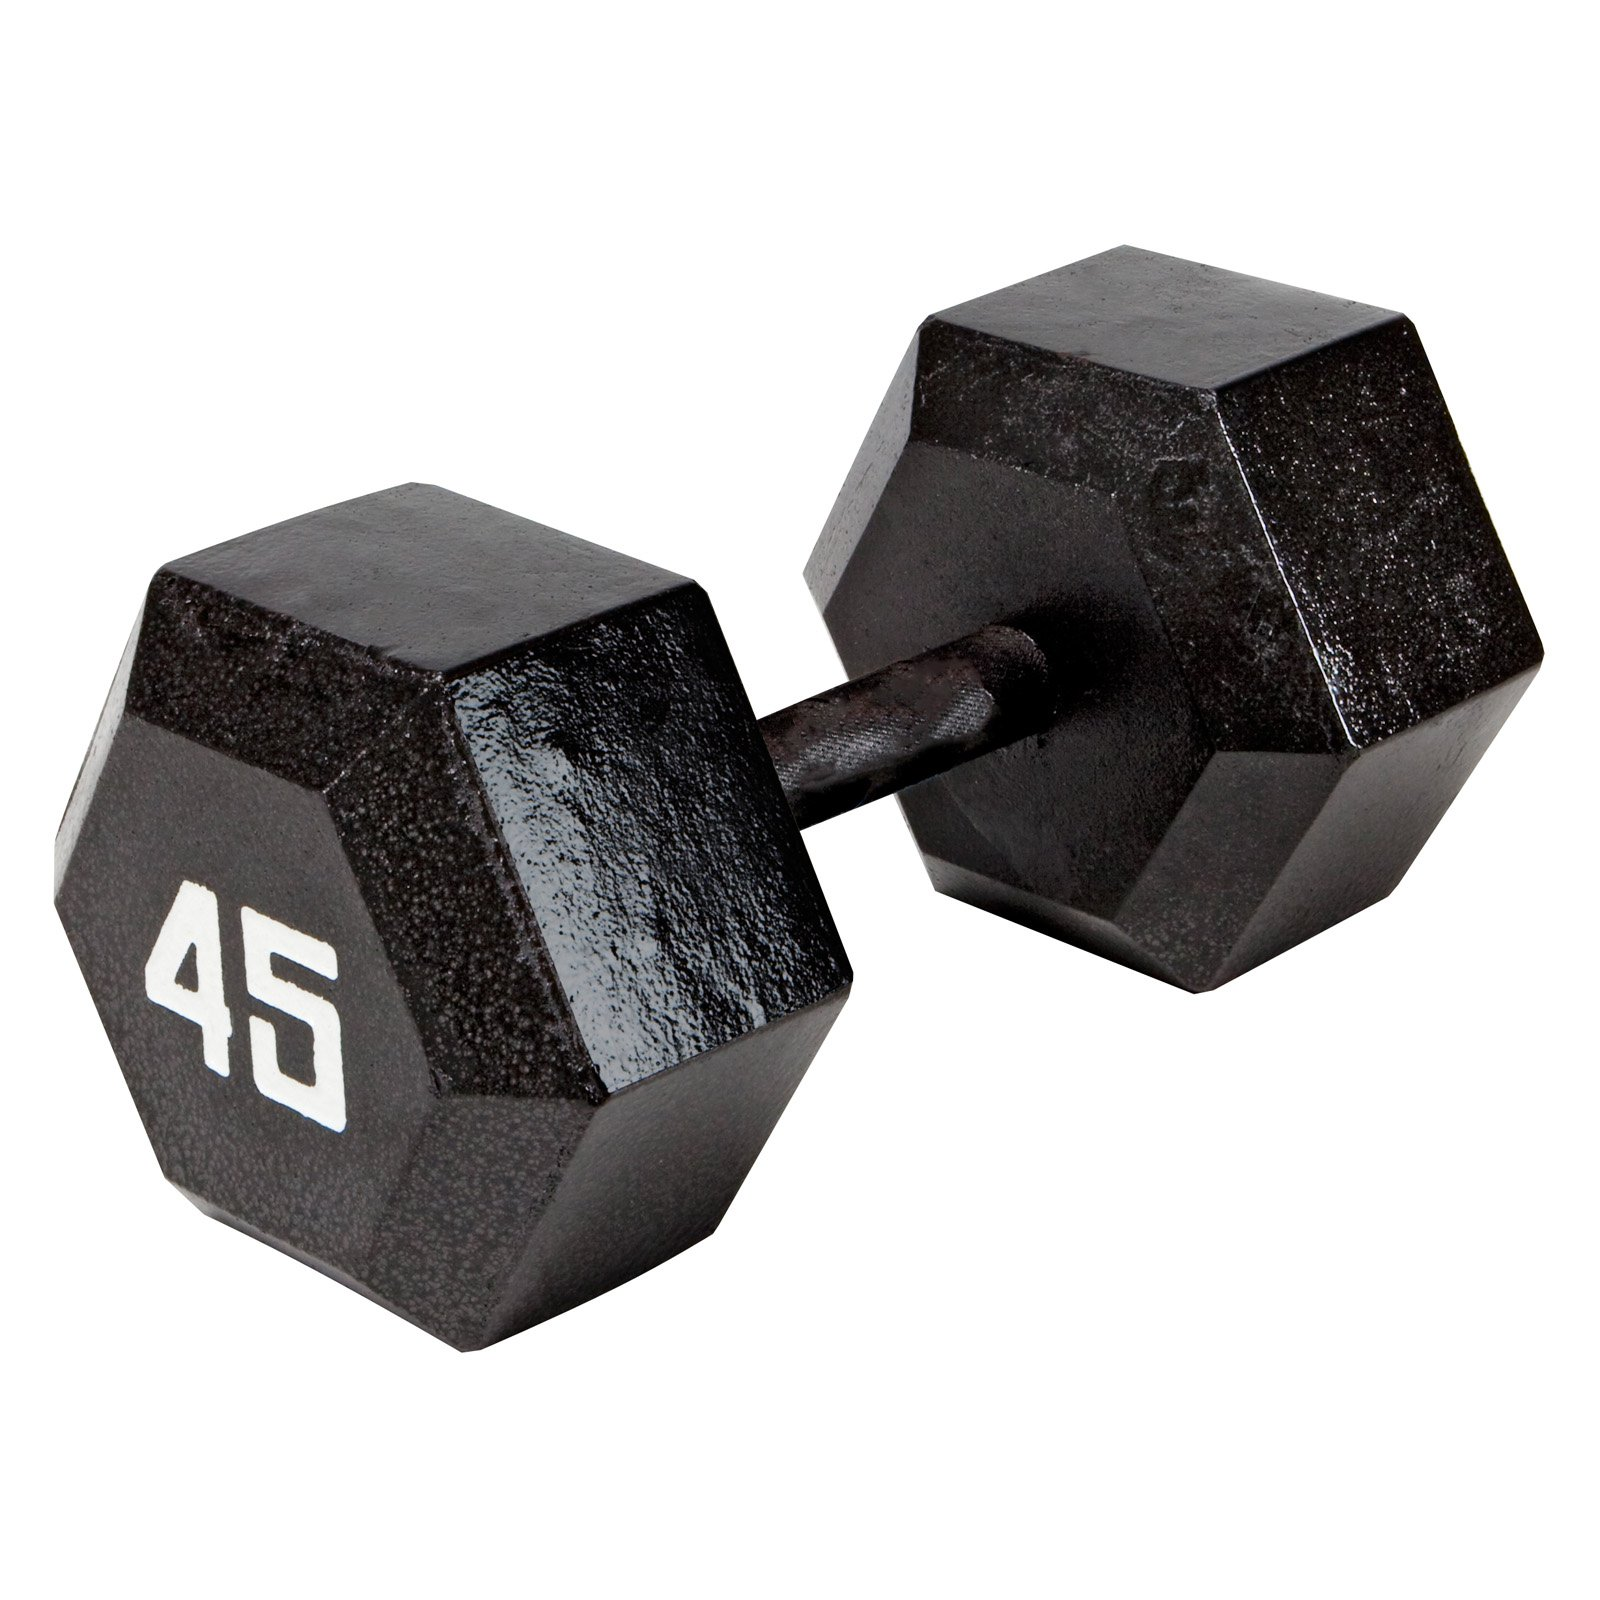 Marcy 45 lb EcoWeight Iron Dumbbell: IV-2045